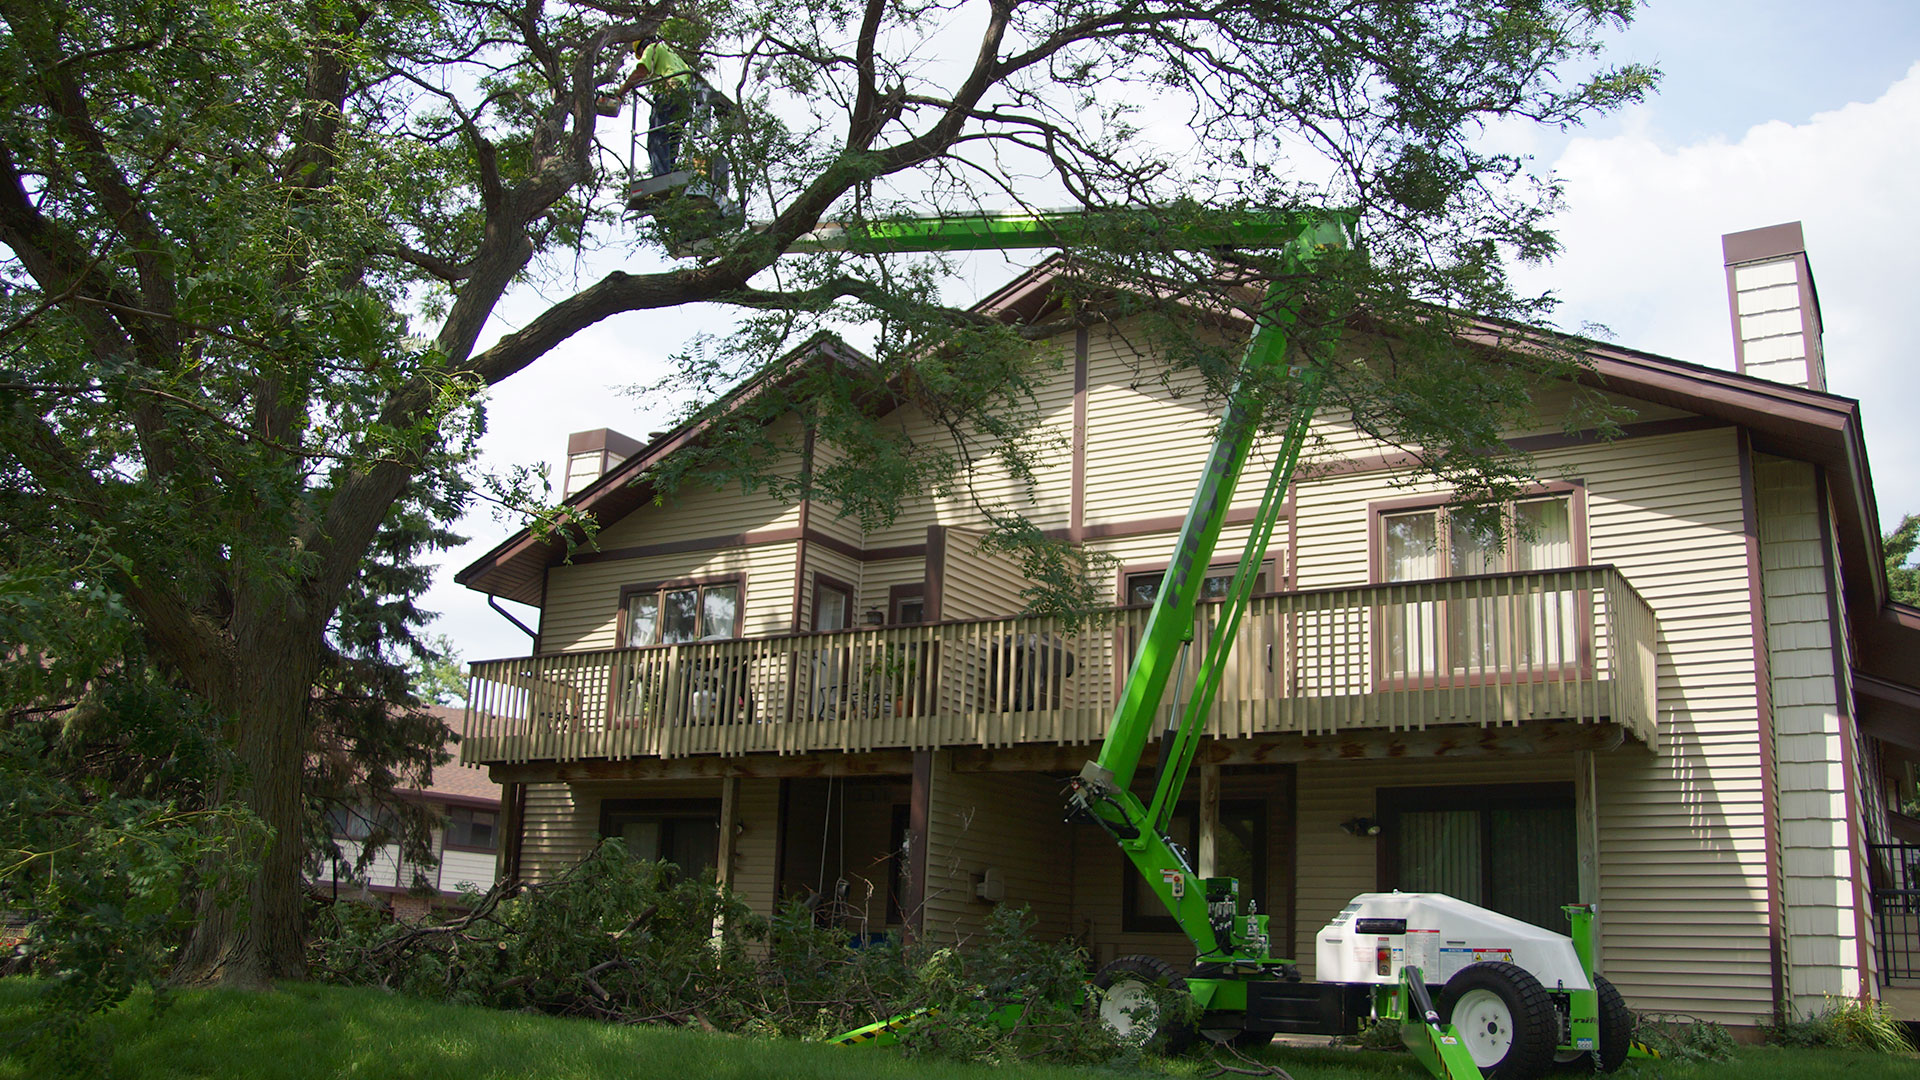 Aerial lift in use